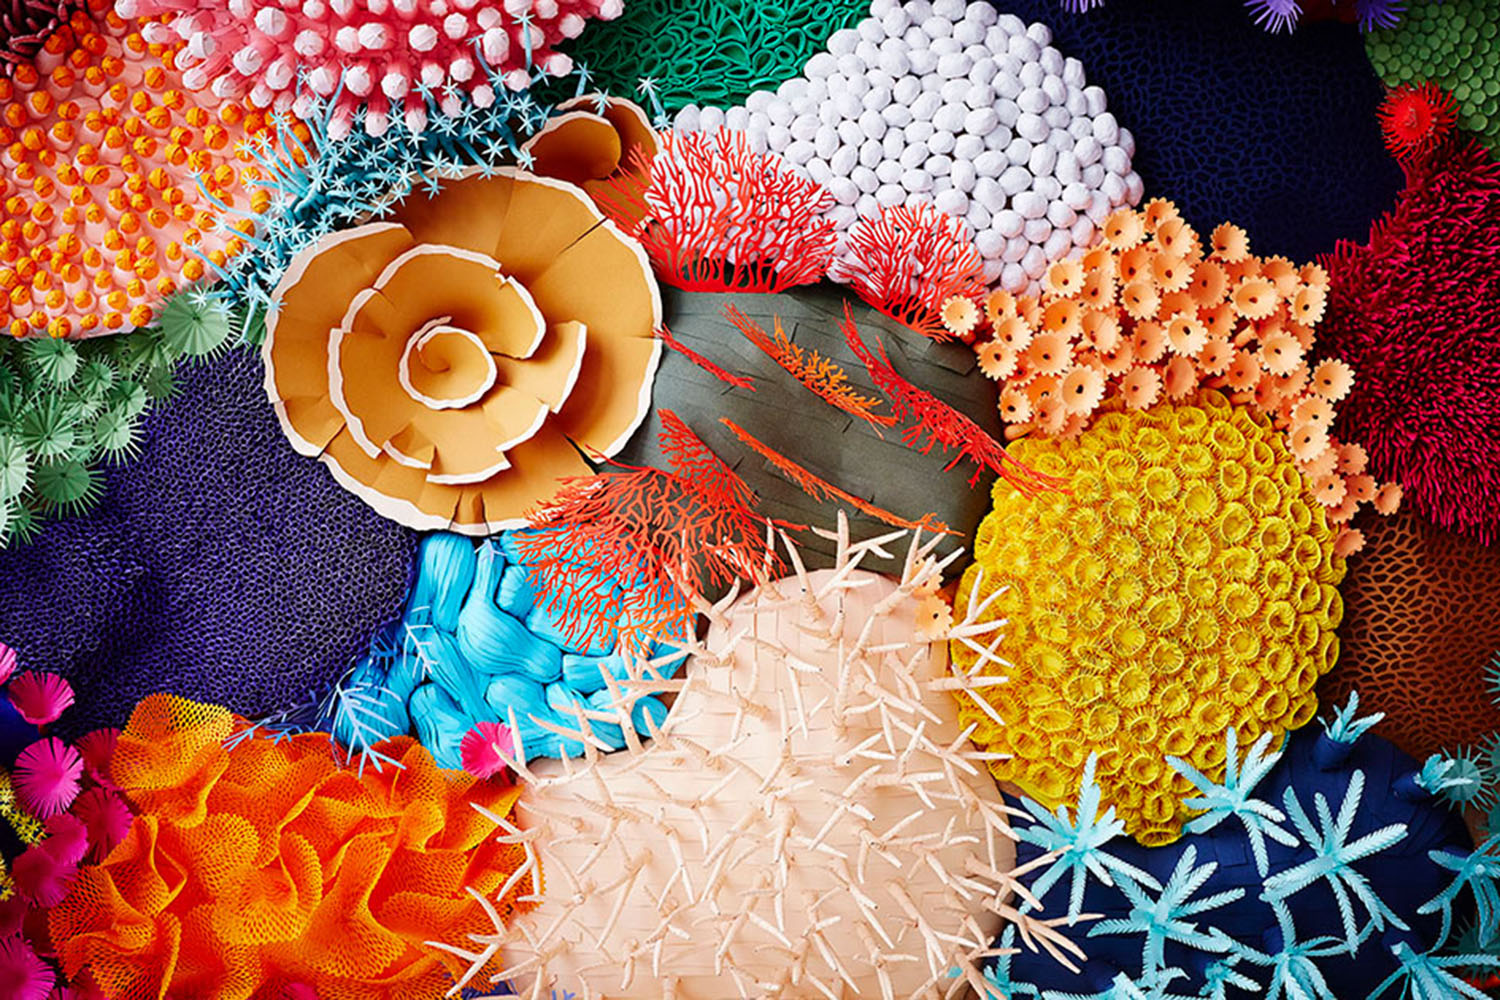 Paper coral detail by mlle Hipolyte